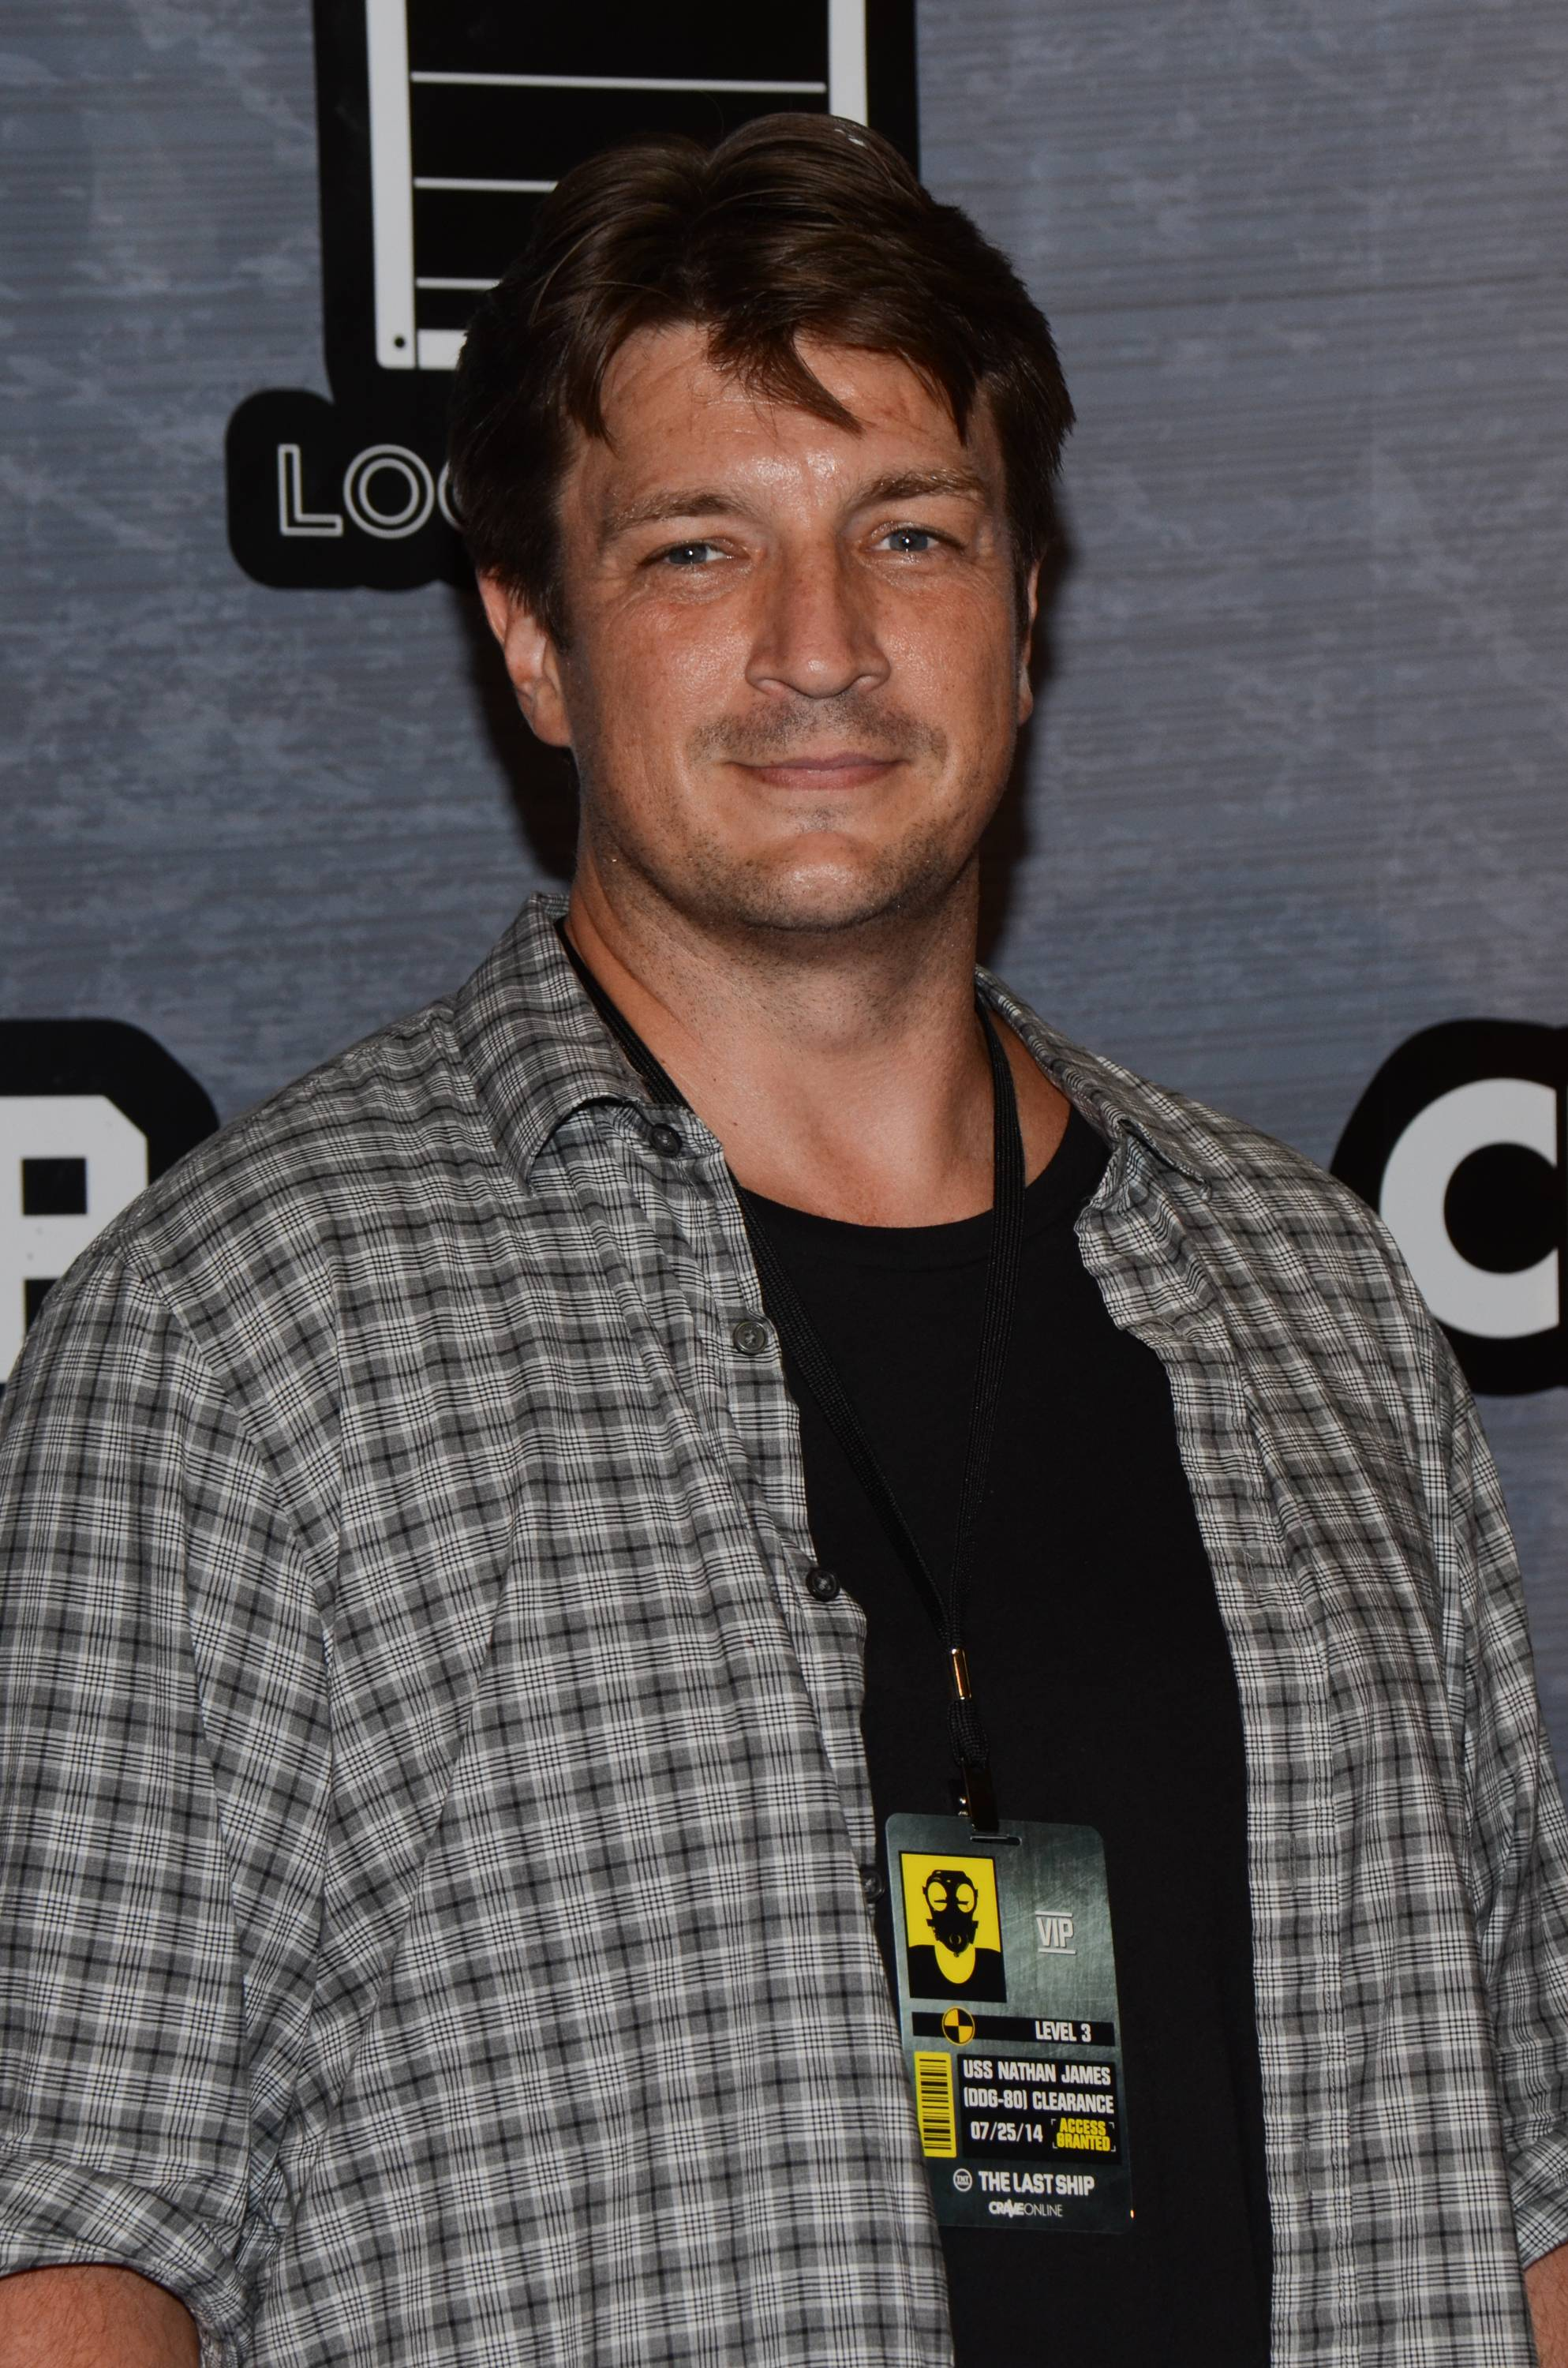 Nathan Fillion seen at The Last Ship Storm Comic-Con by Sea on Day 2 of Comic-Con International at USS Midway on Friday.